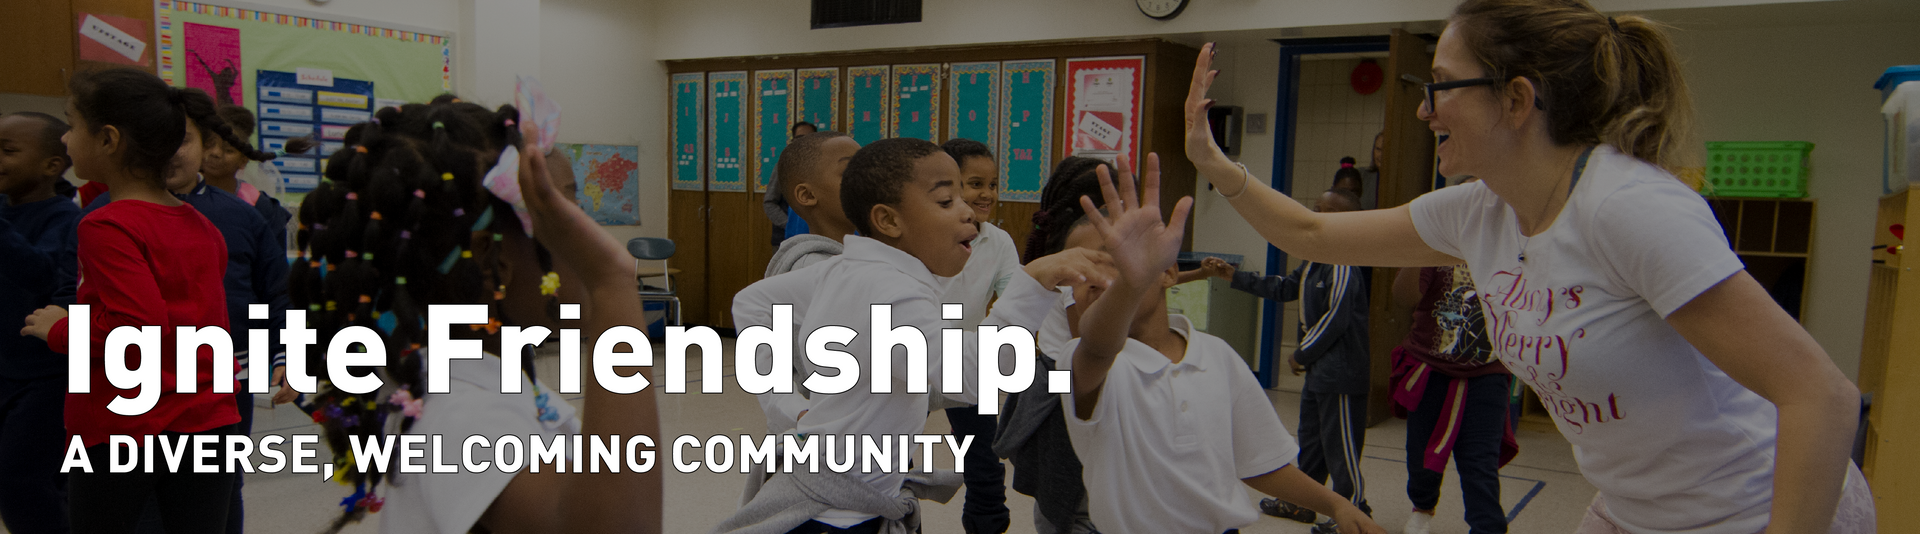 Ignite friendship: a diverse, welcoming community